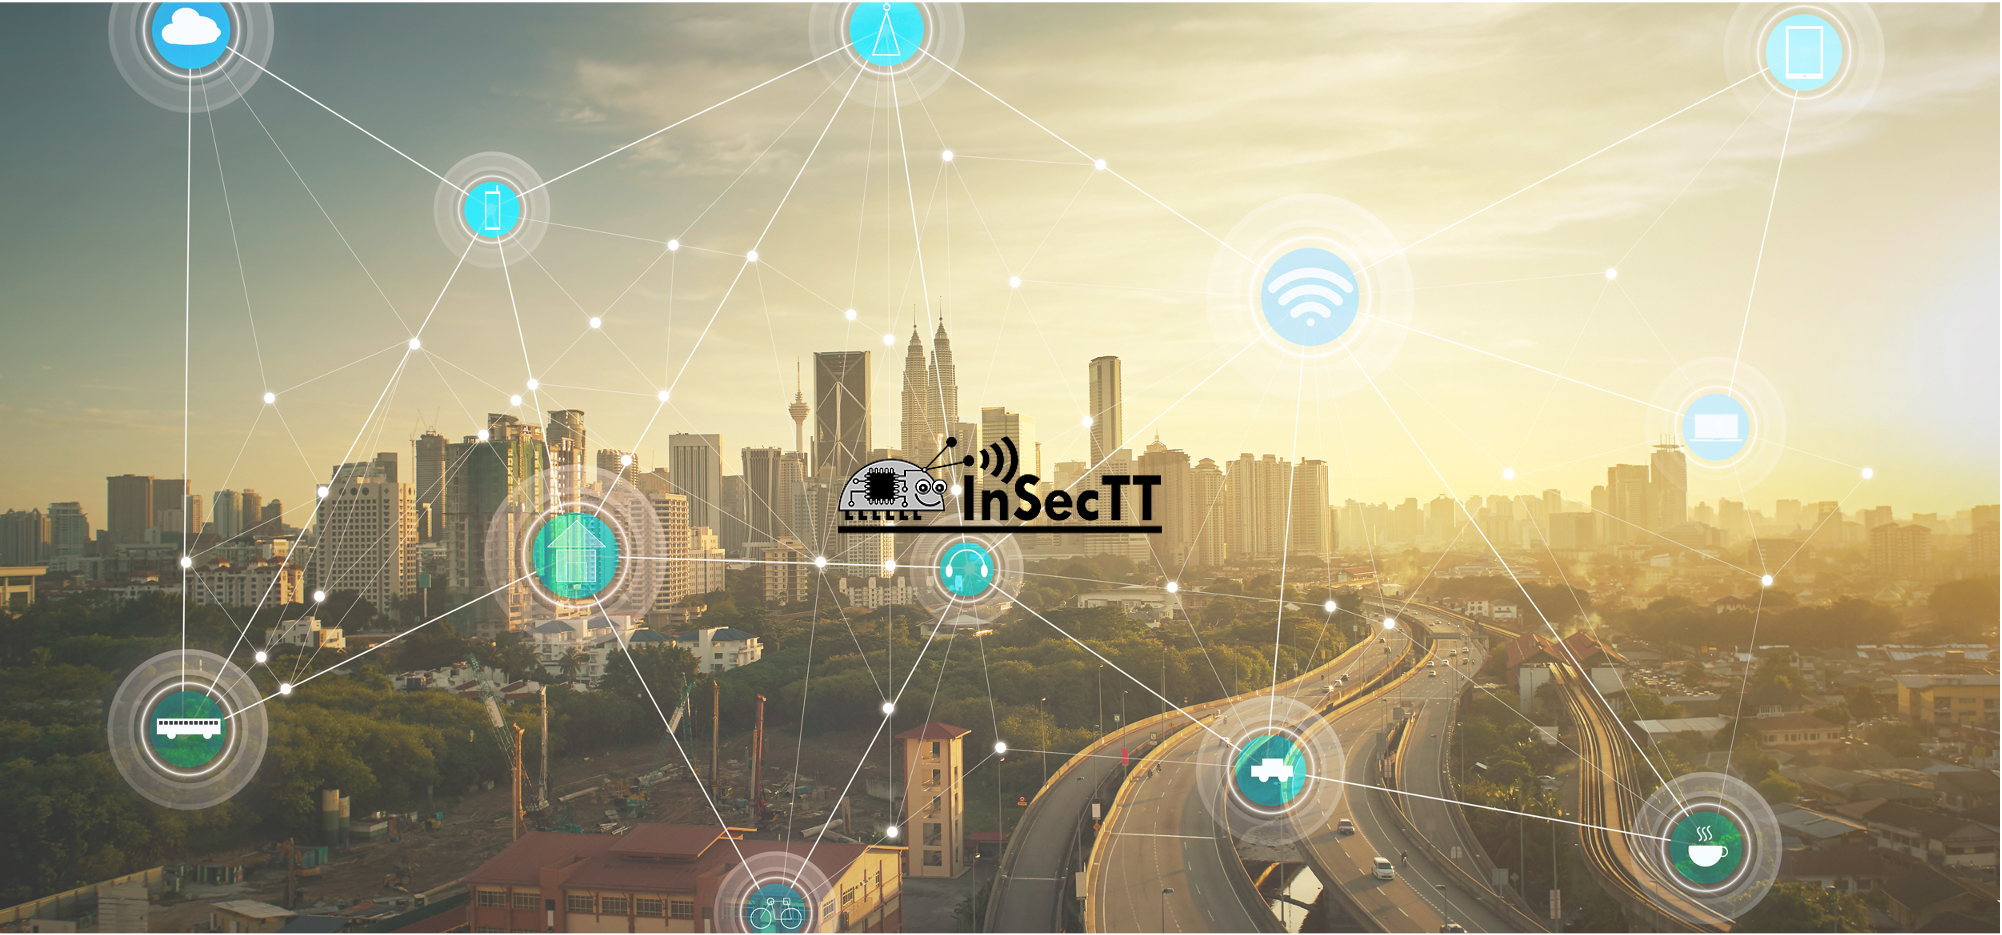 insectt-cover-pic